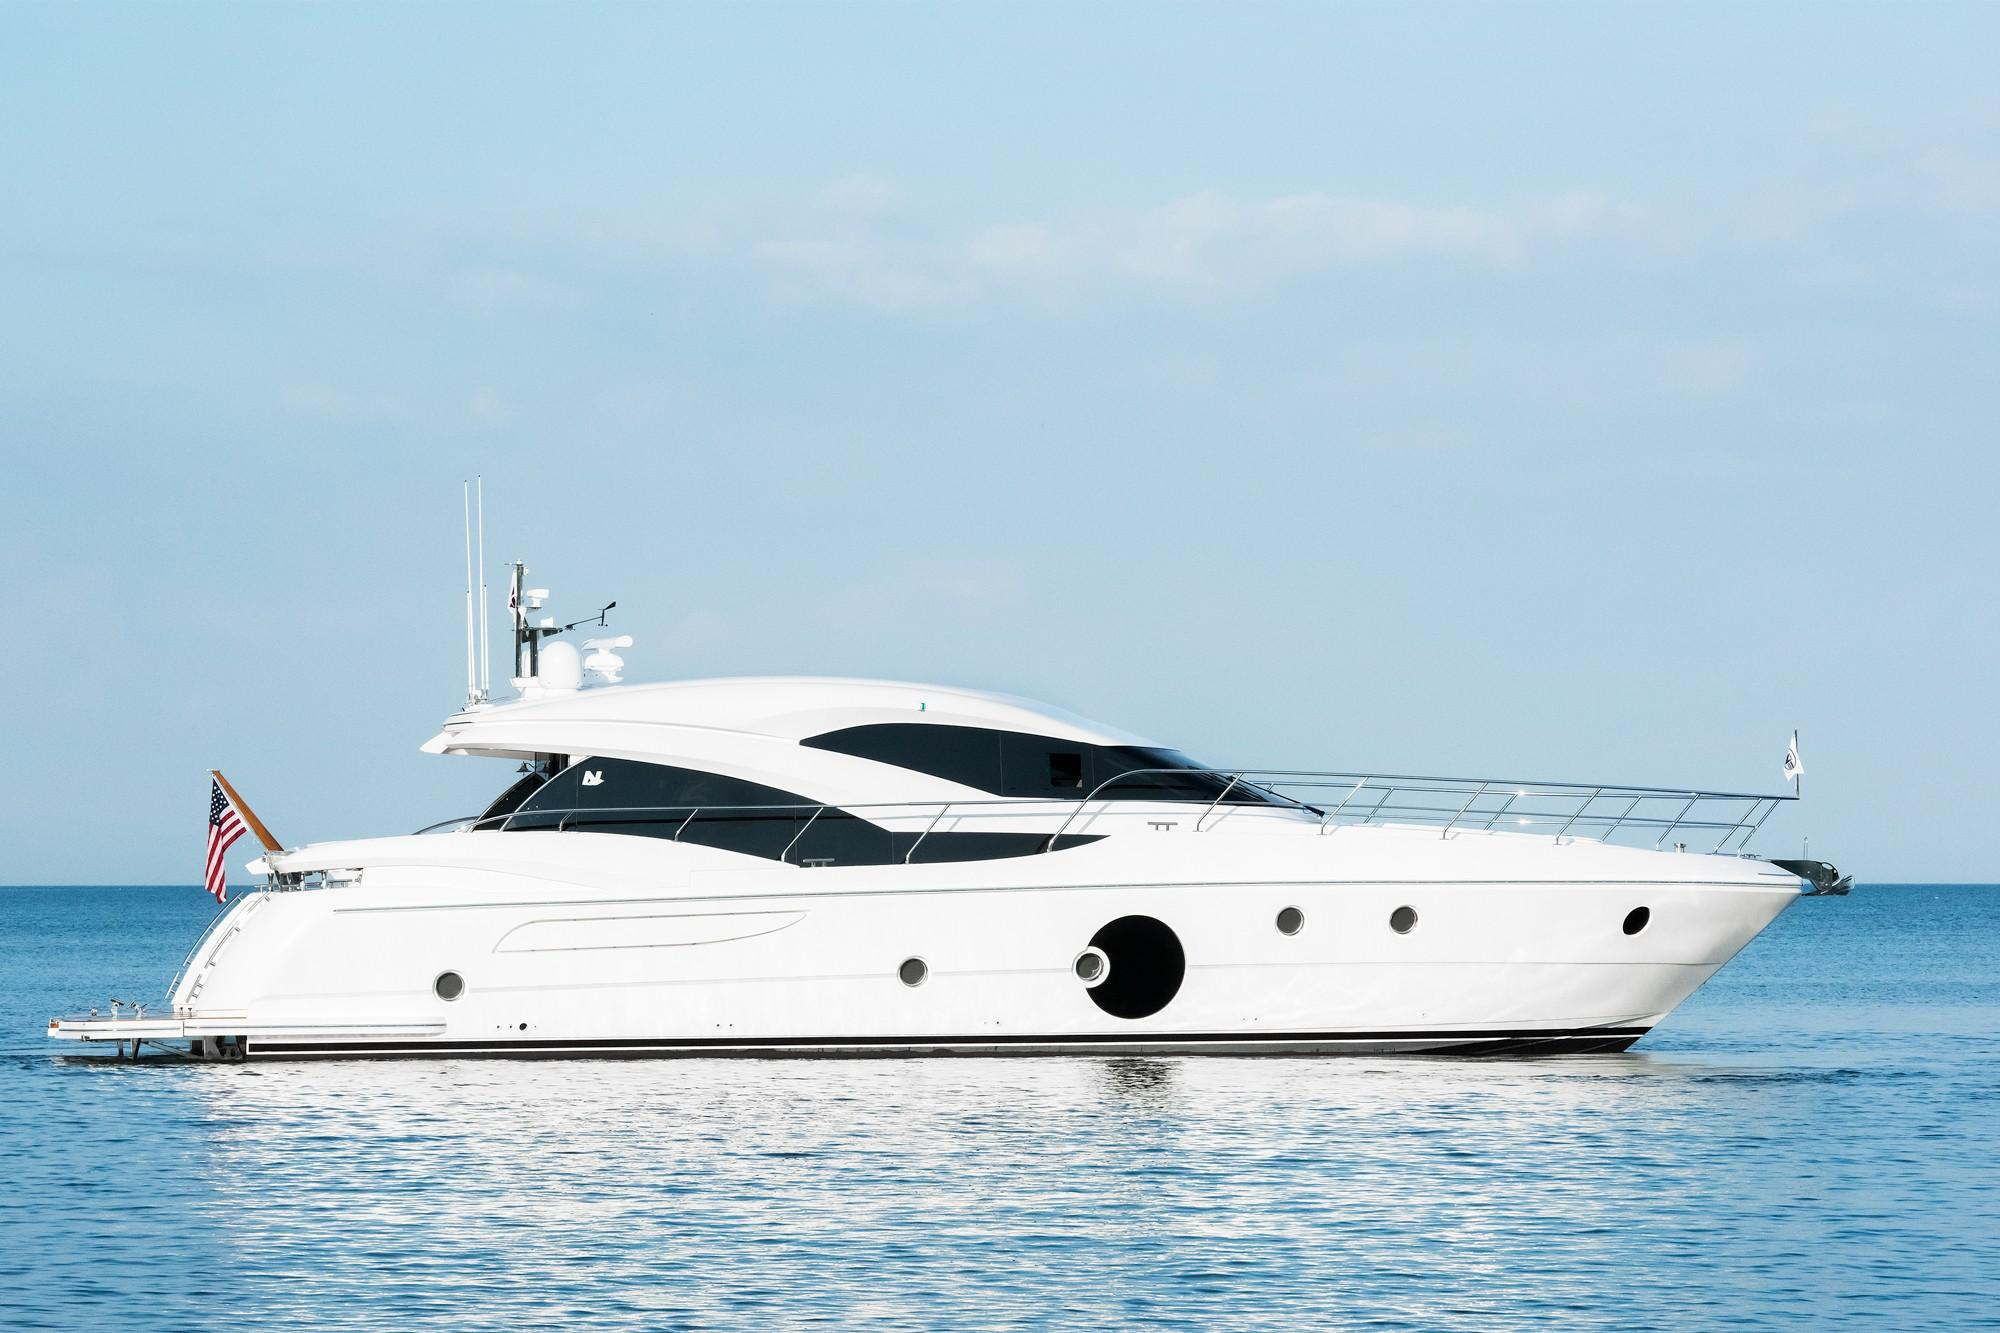 66 ft Neptunus 650 Express